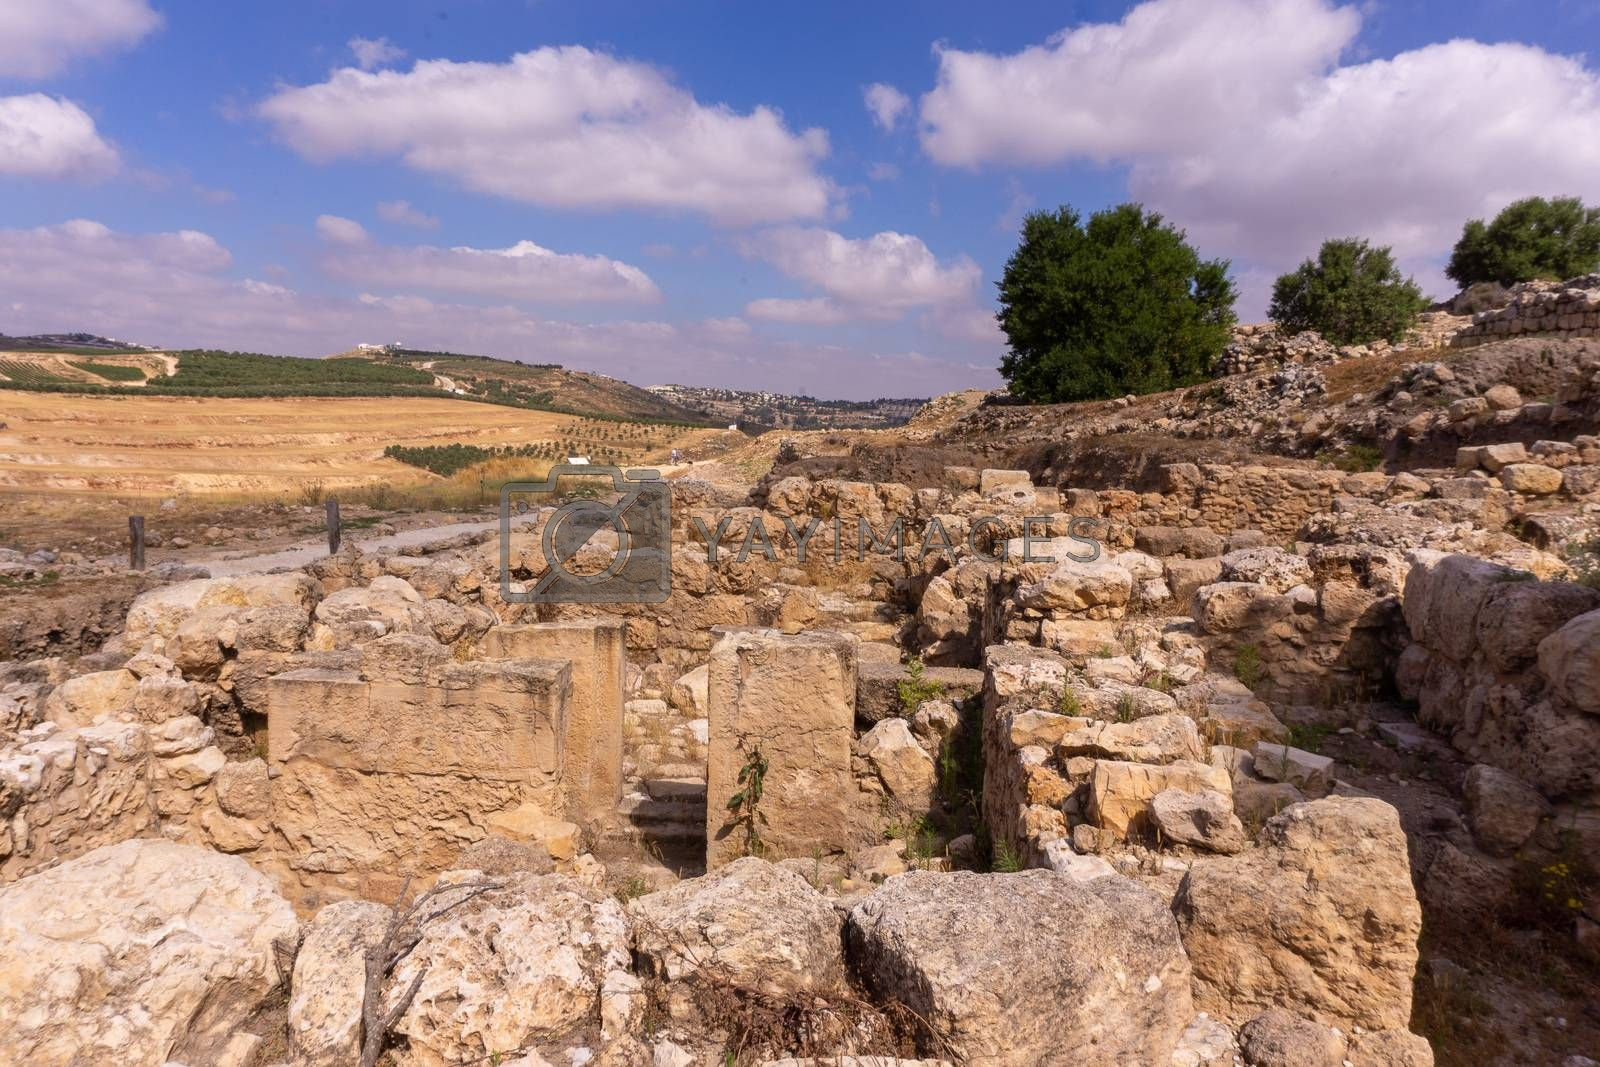 Excavations in archaeology park of Samaria settlement by javax